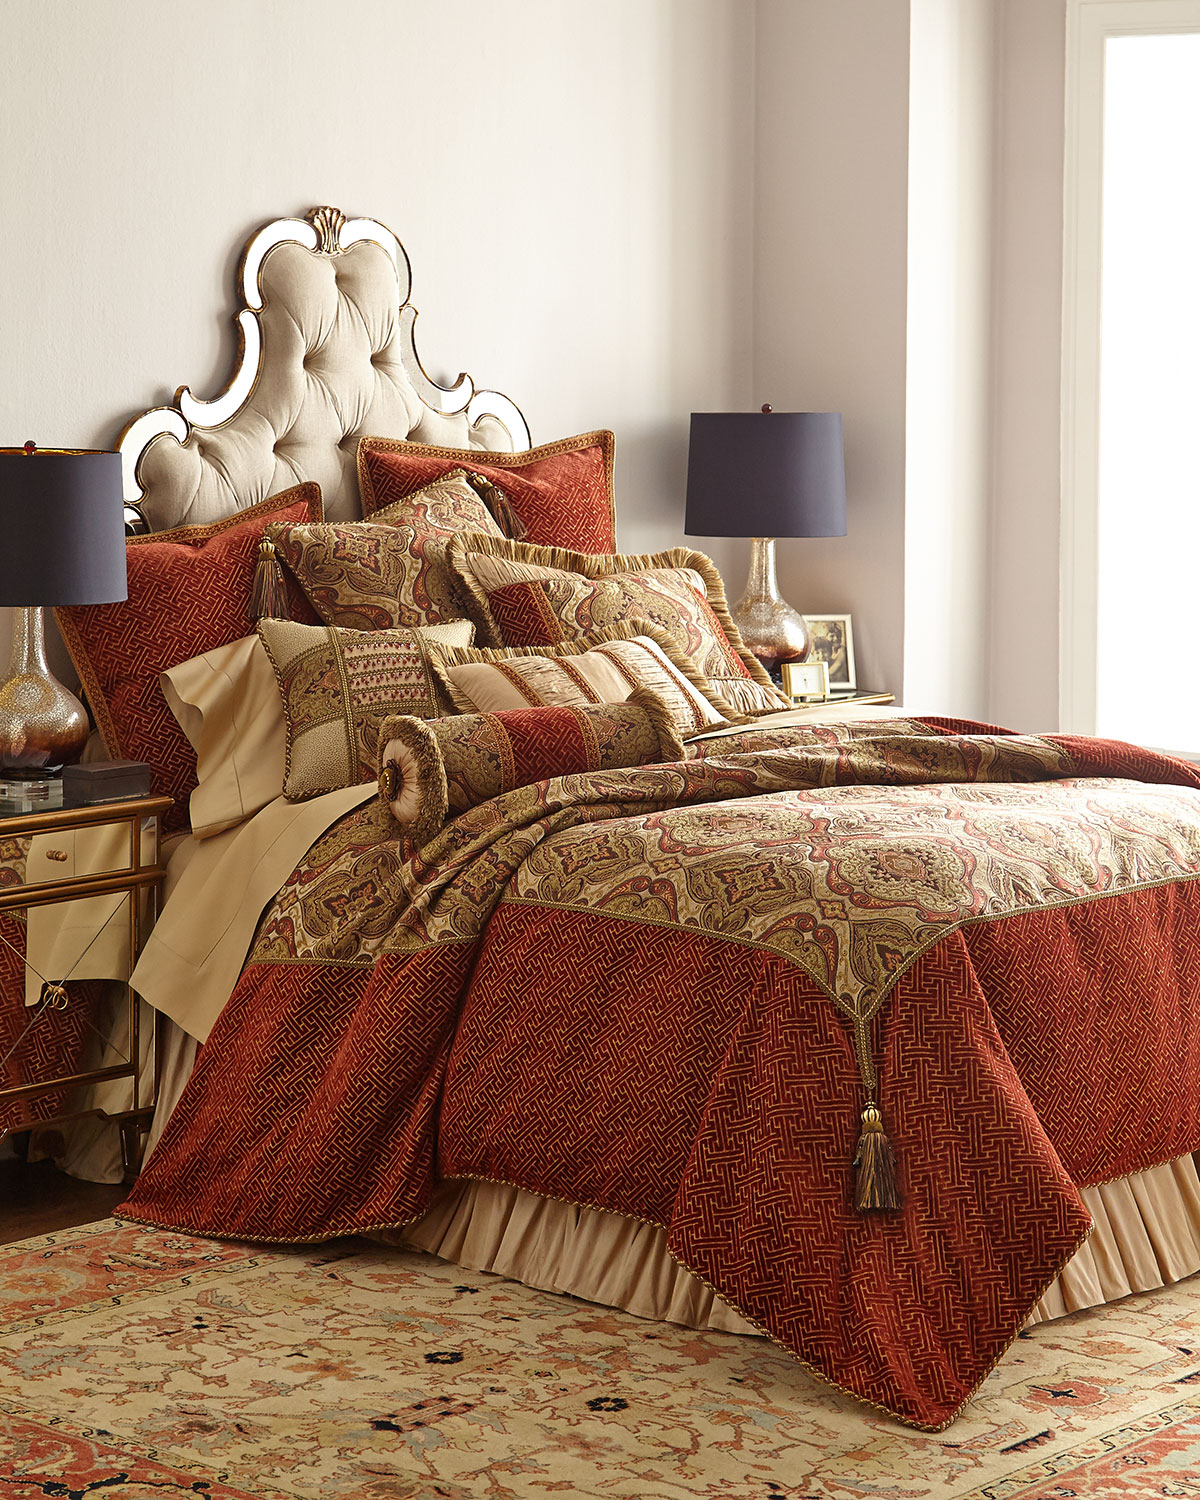 King Mediterrane Duvet Cover